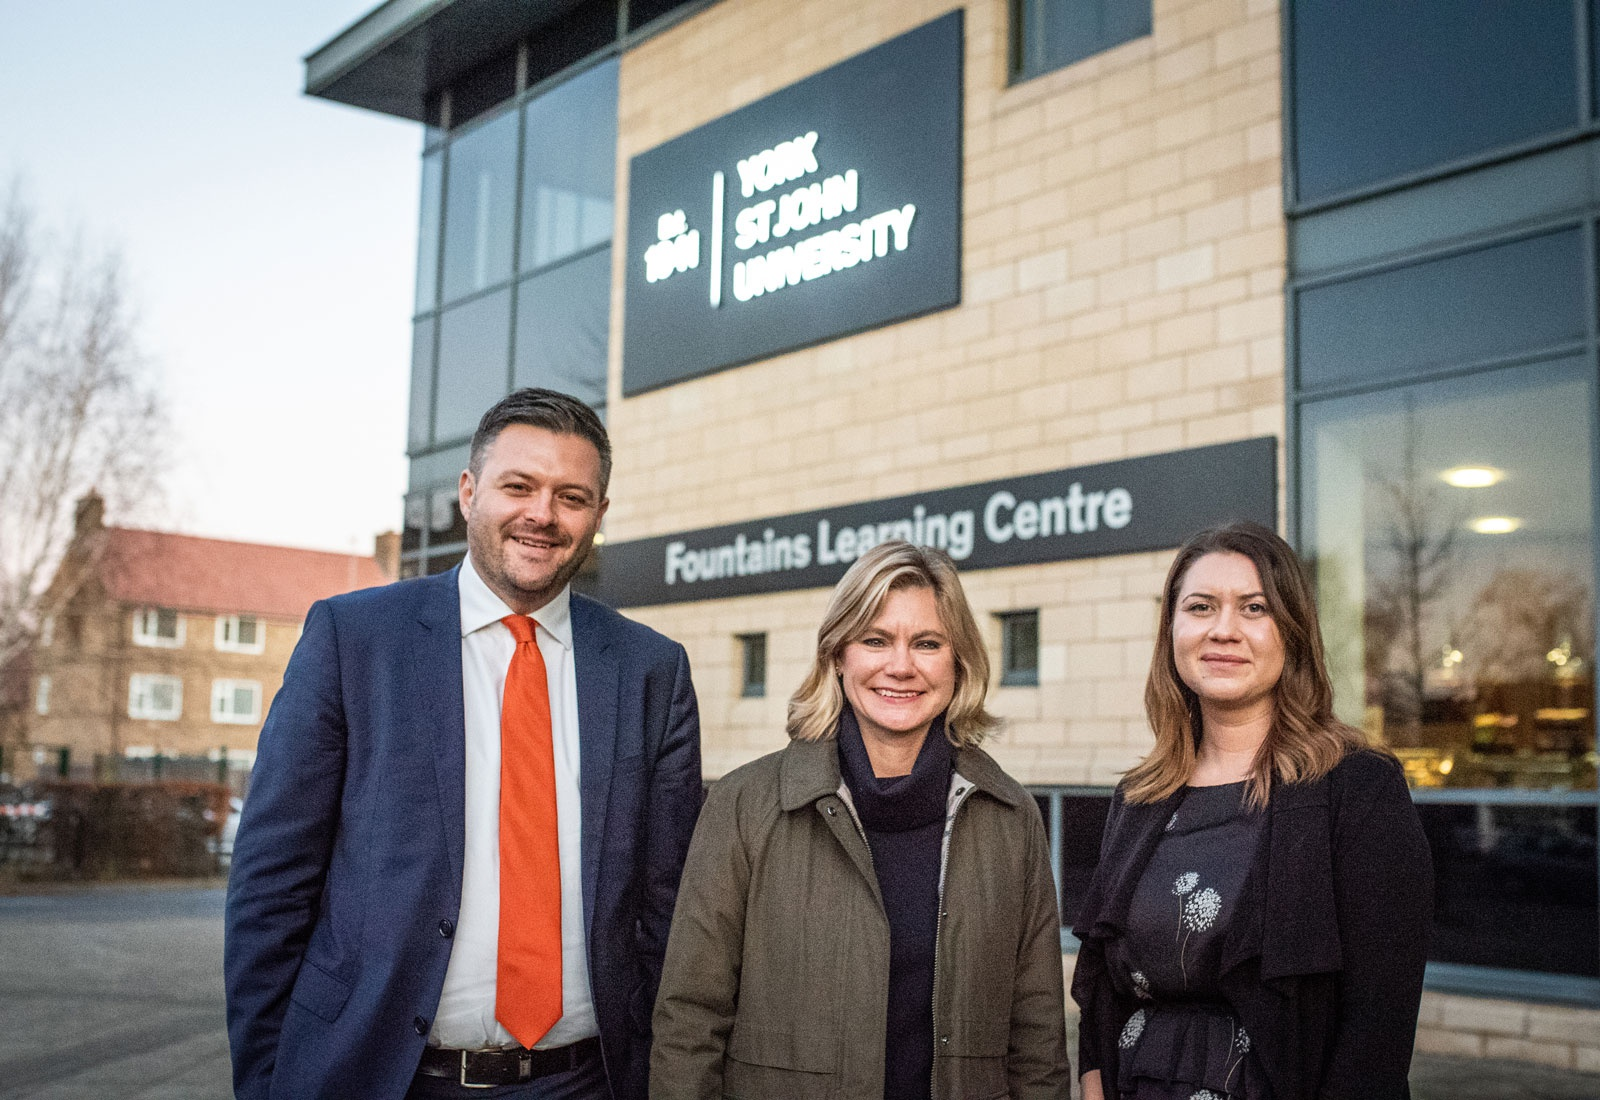 Rob Hickey, Justine Greening and Eleanor Ineson standing in front of York St John University.